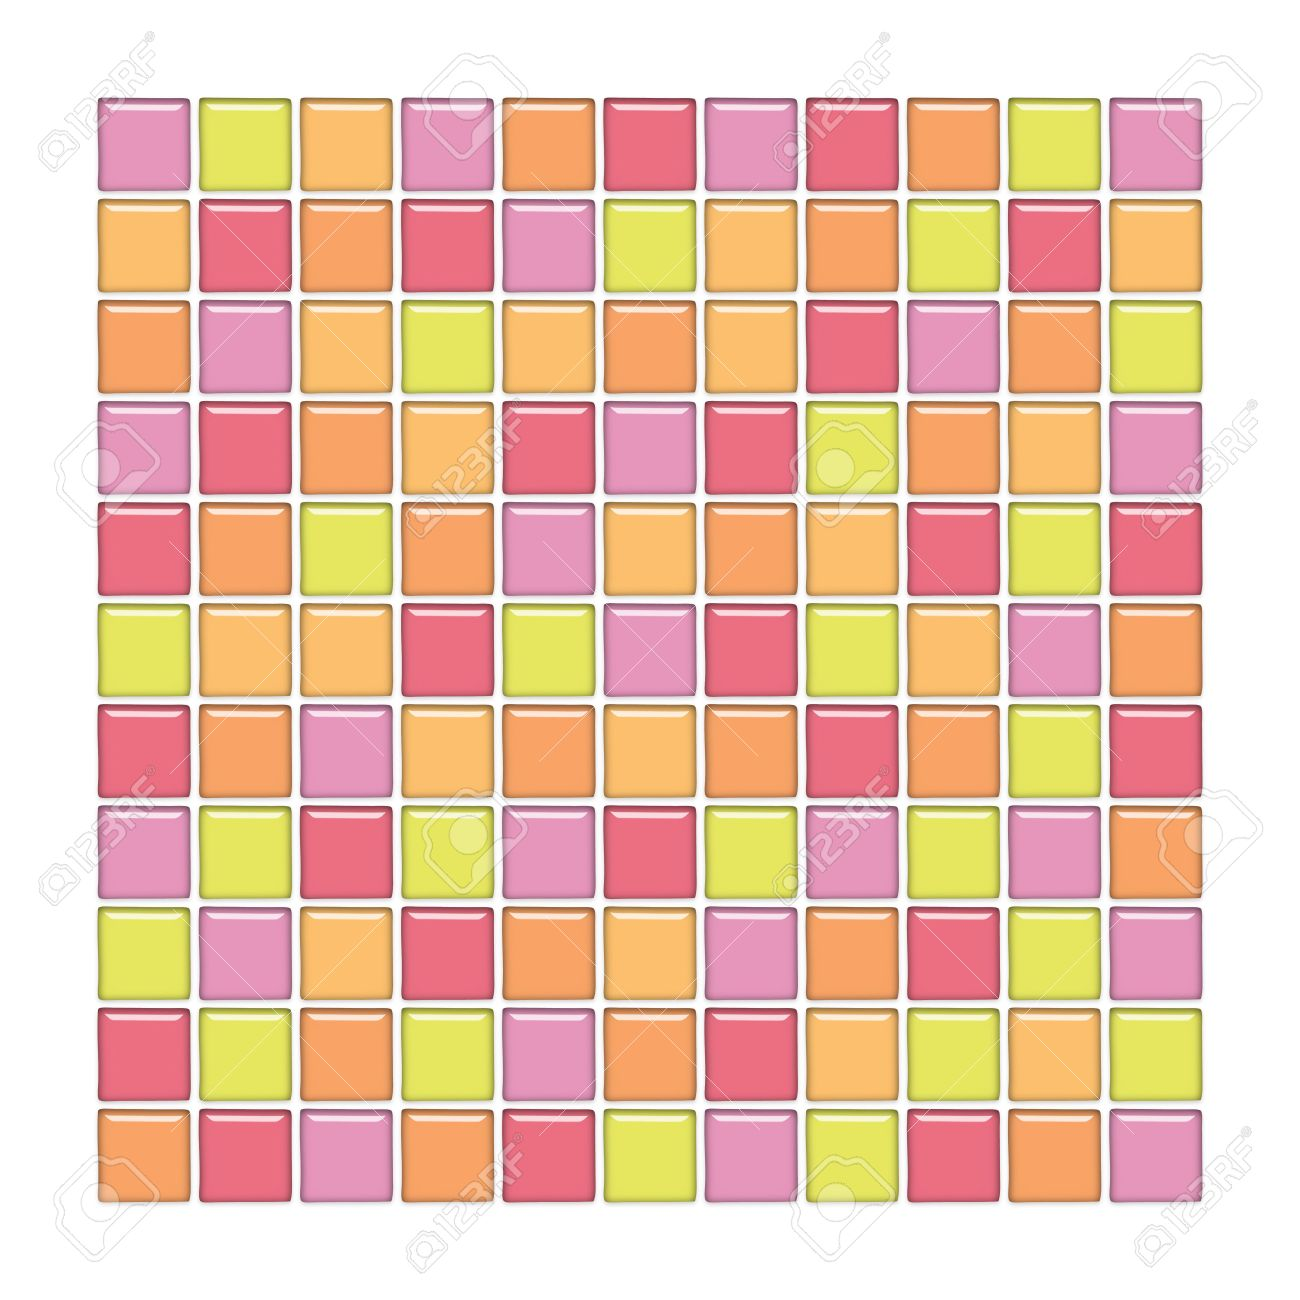 Bathroom Wall With Pink, Yellow And Orange Glass Mosaic Tiles Stock Photo    3011729